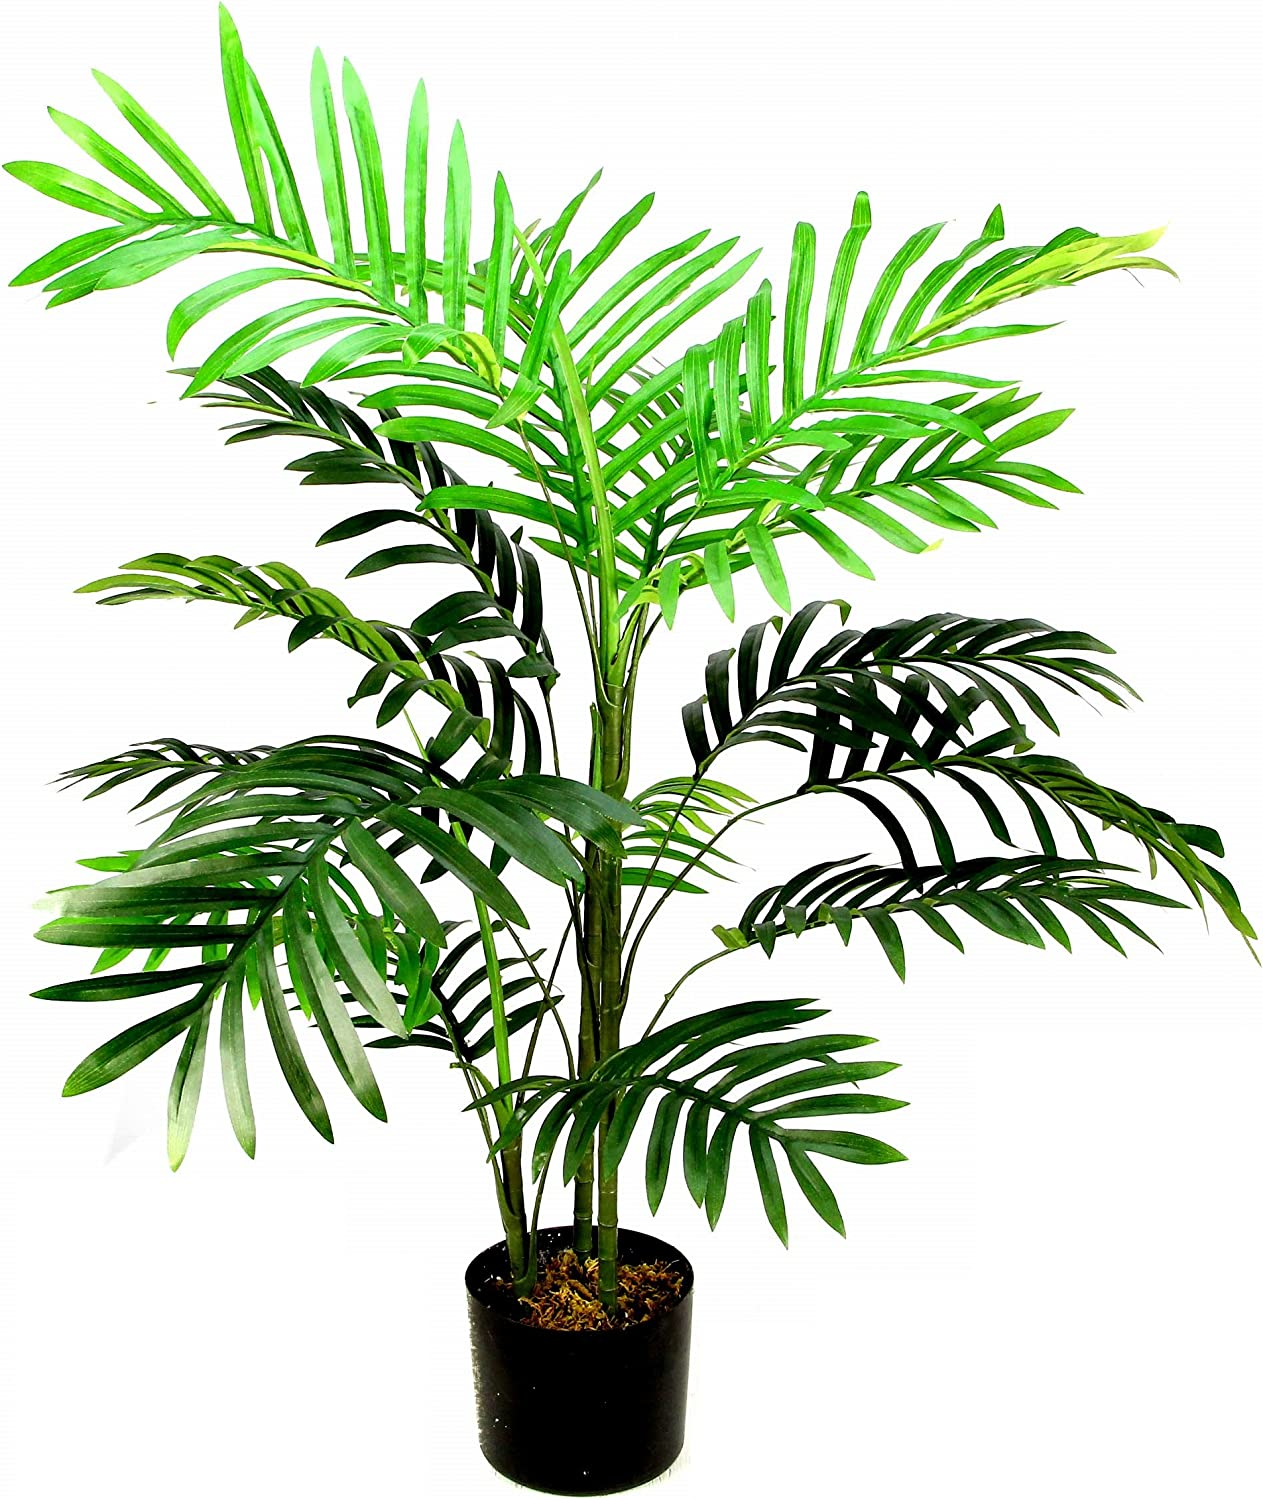 Admired By Nature Artificial Paradise Palm Tree Plant Plastic Pot, 3', Single Pack, 4 Count